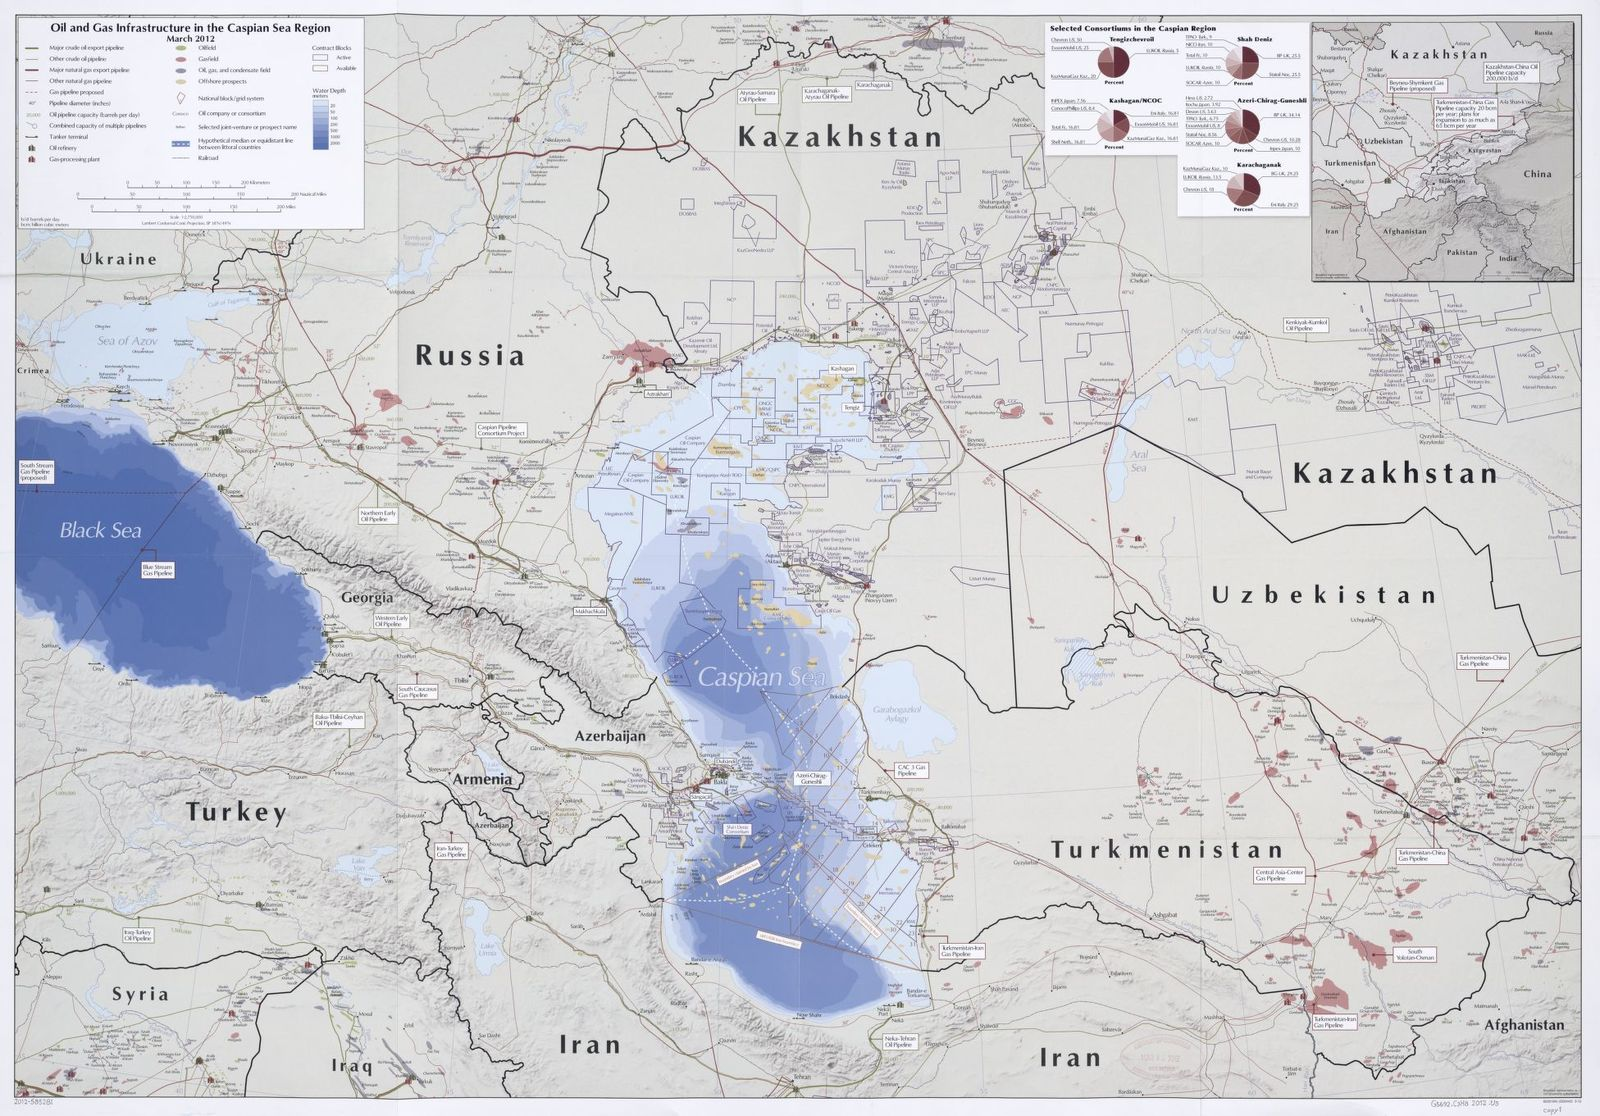 Oil and gas infrastructure in the Caspian Sea region : March 2012.